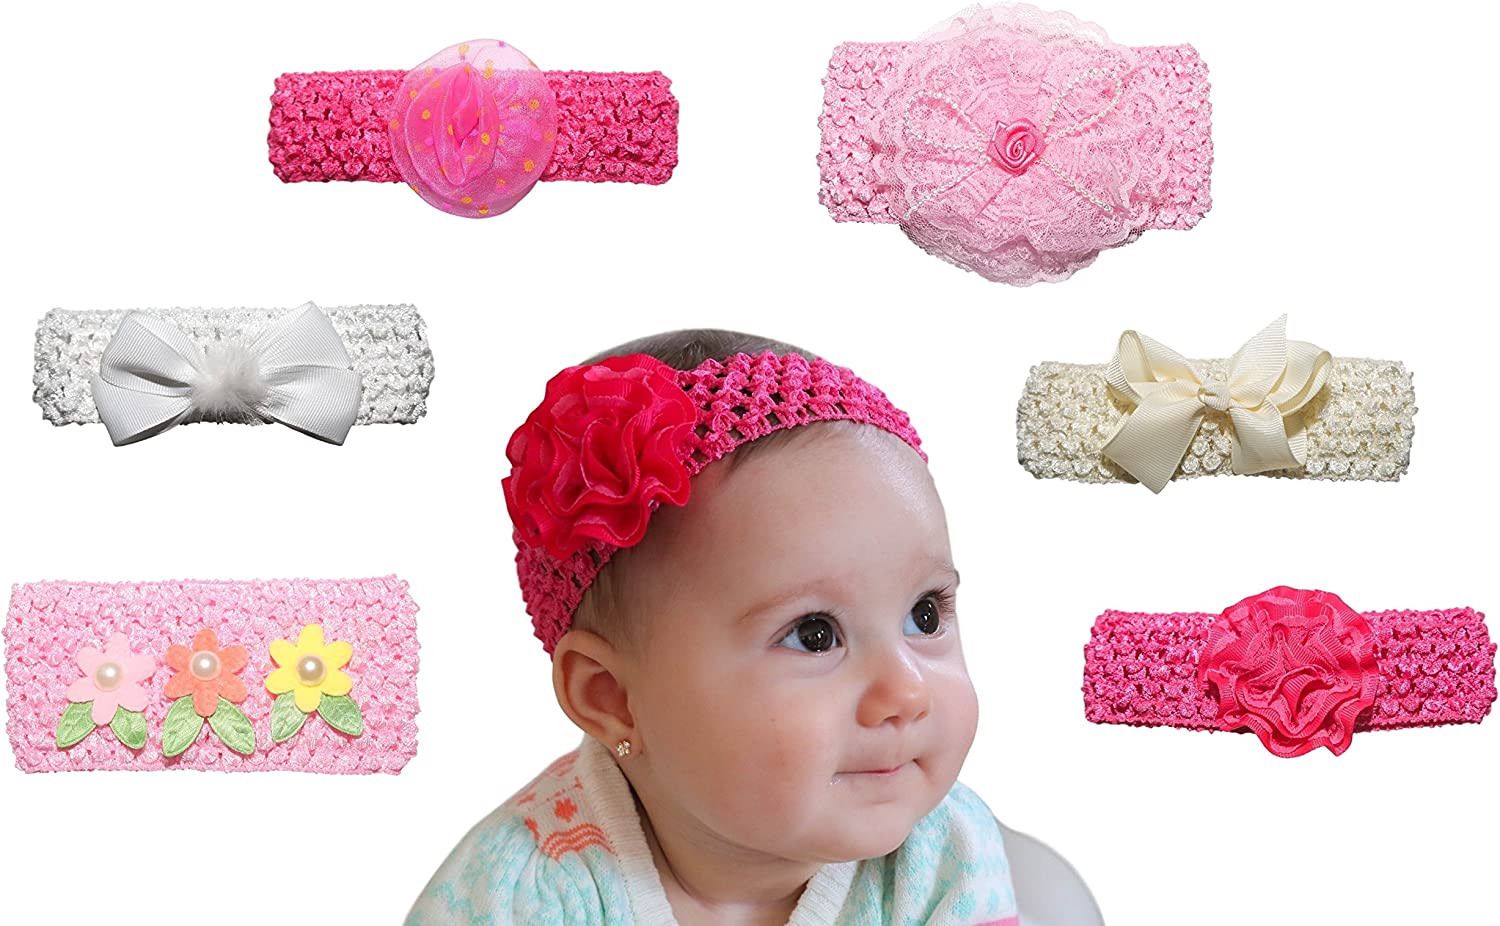 6 Pack Baby Headband – New Baby Girl Shower Gifts - Photo Props for Babies – Perfect for Newborn Photography, 1 Year Olds and Twins, First Birthday: Amazon.co.uk: Baby